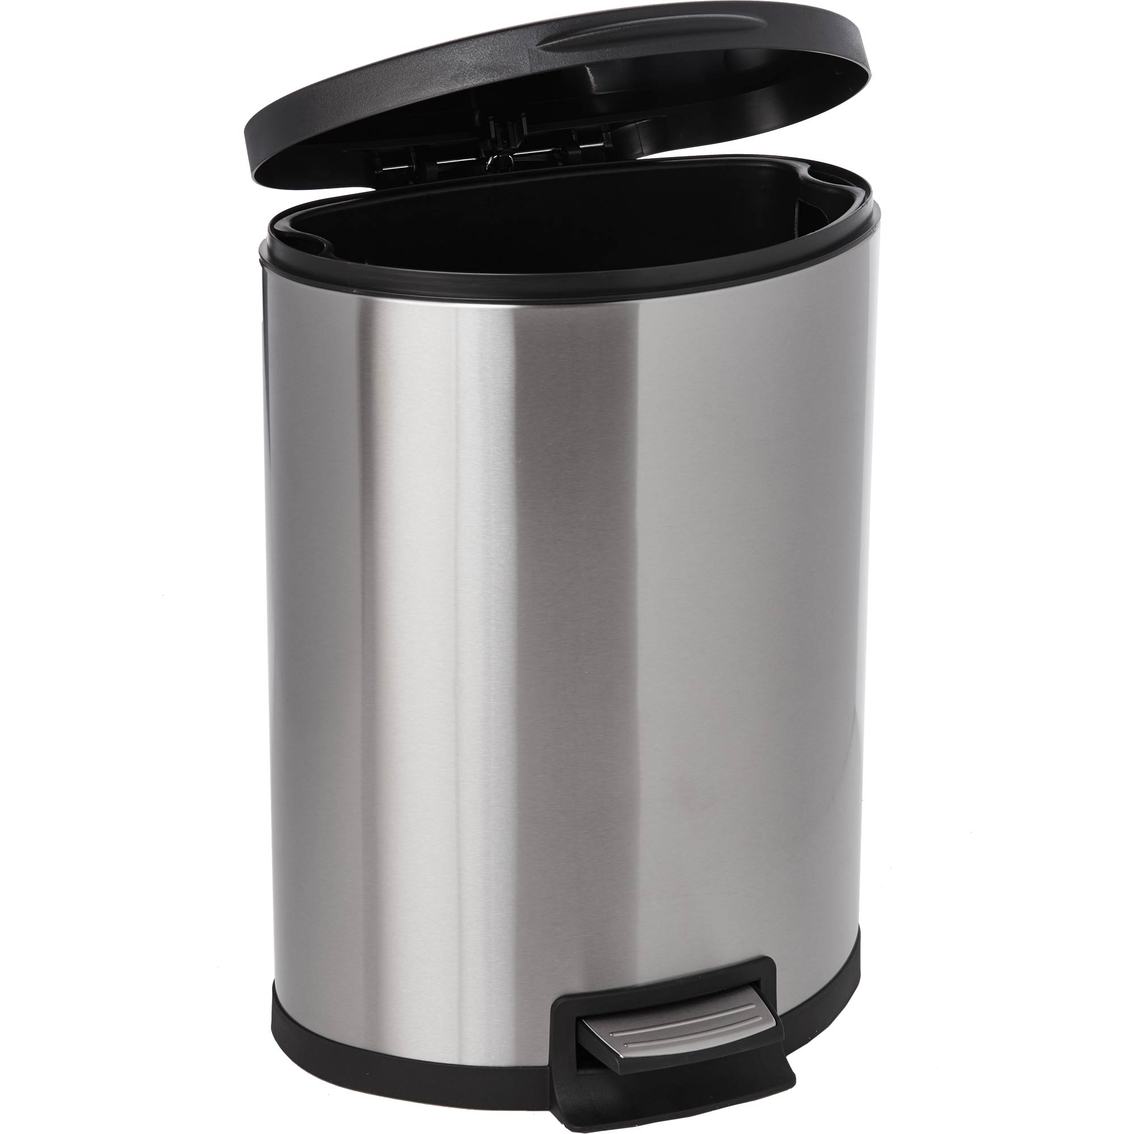 Cool Trash Bins Simply Perfect 45l Semi Round Stainless Steel Step Bin Trash